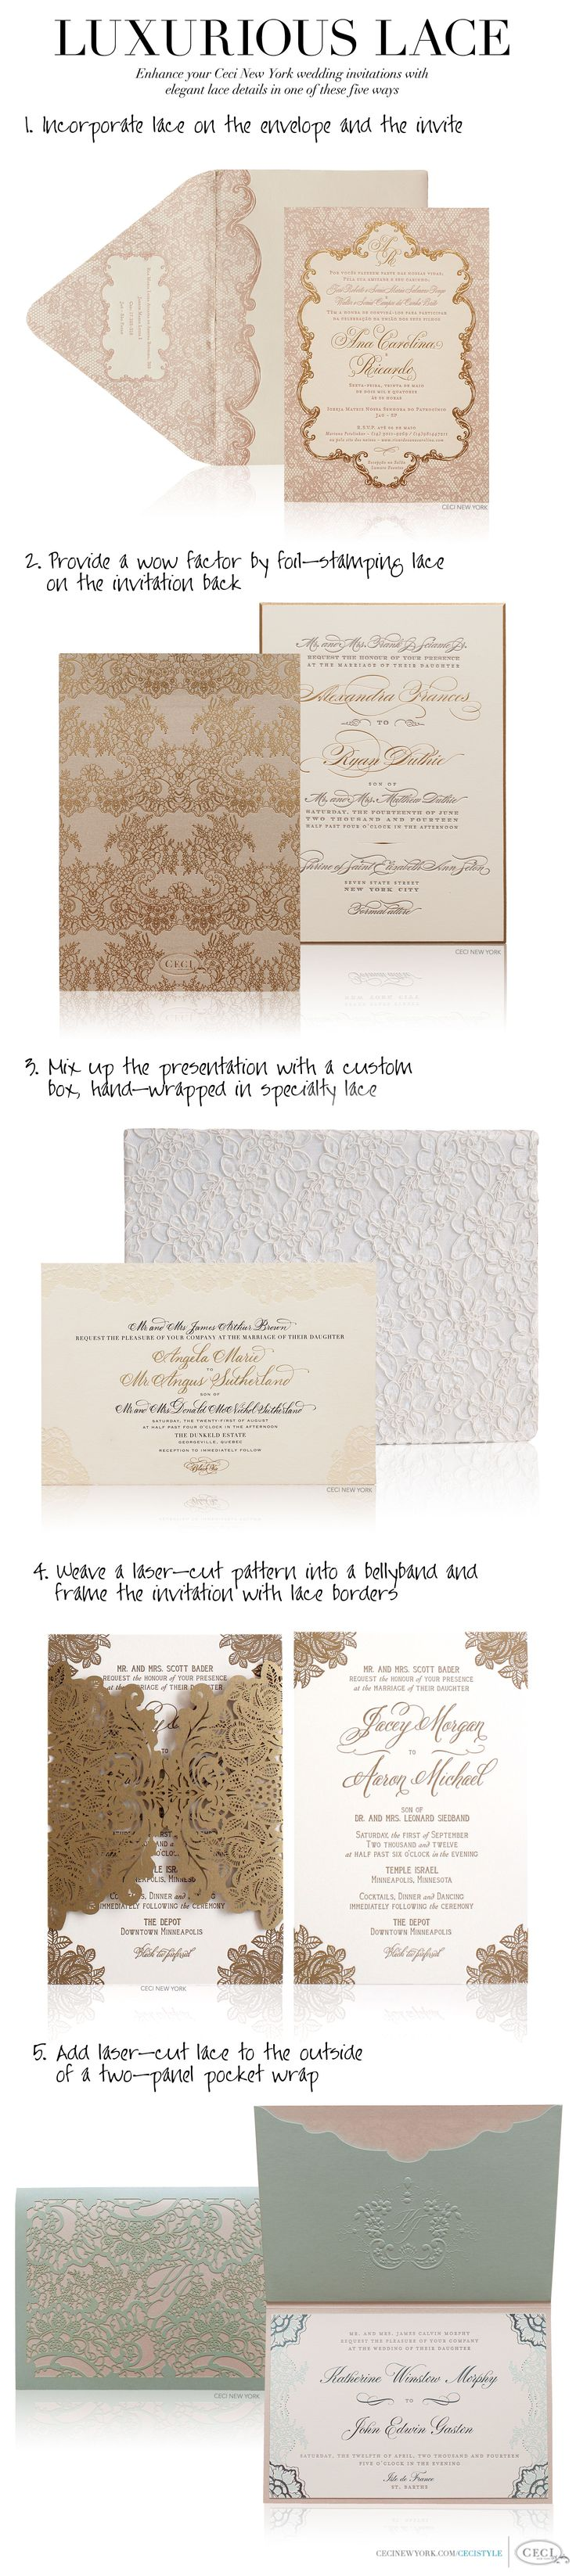 35 best invitation cards images on pinterest invitation cards luxurious lace enhance your ceci new york wedding invitations with elegant lace details in one stopboris Choice Image